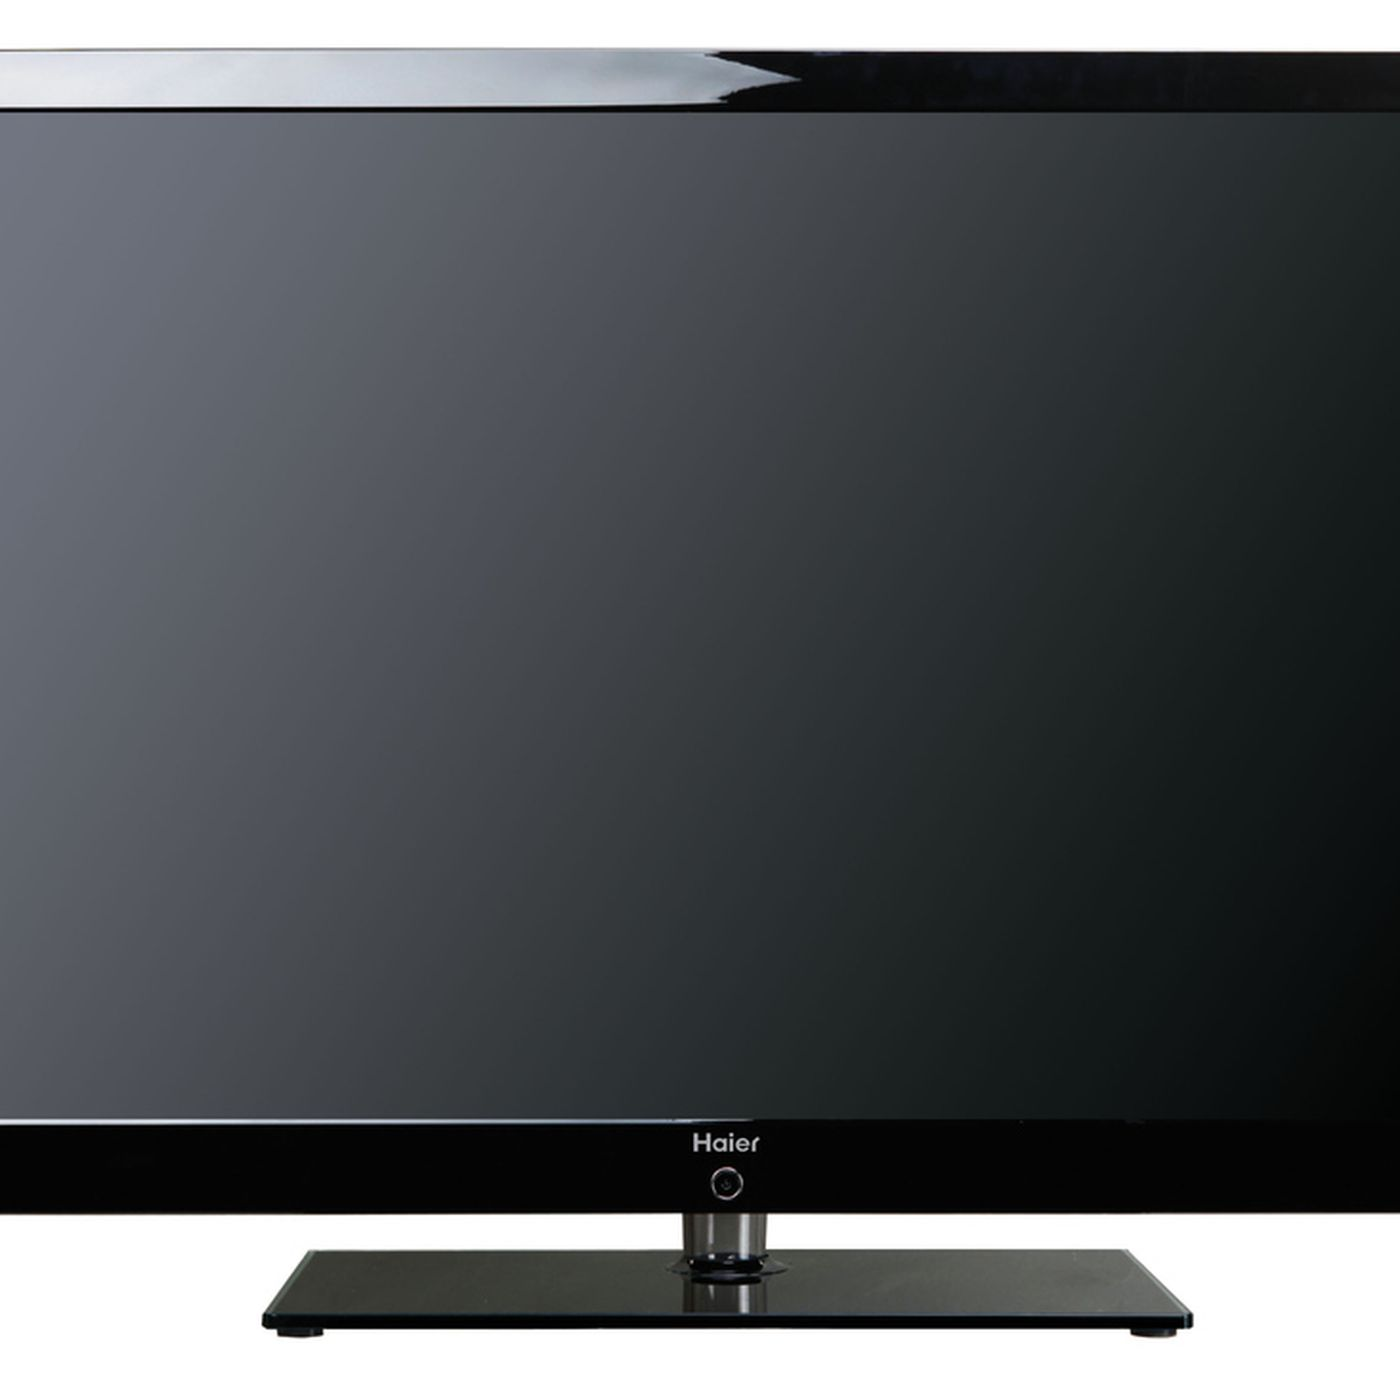 Haier's 2013 TVs include Roku Streaming Stick support, Wi-Fi Direct